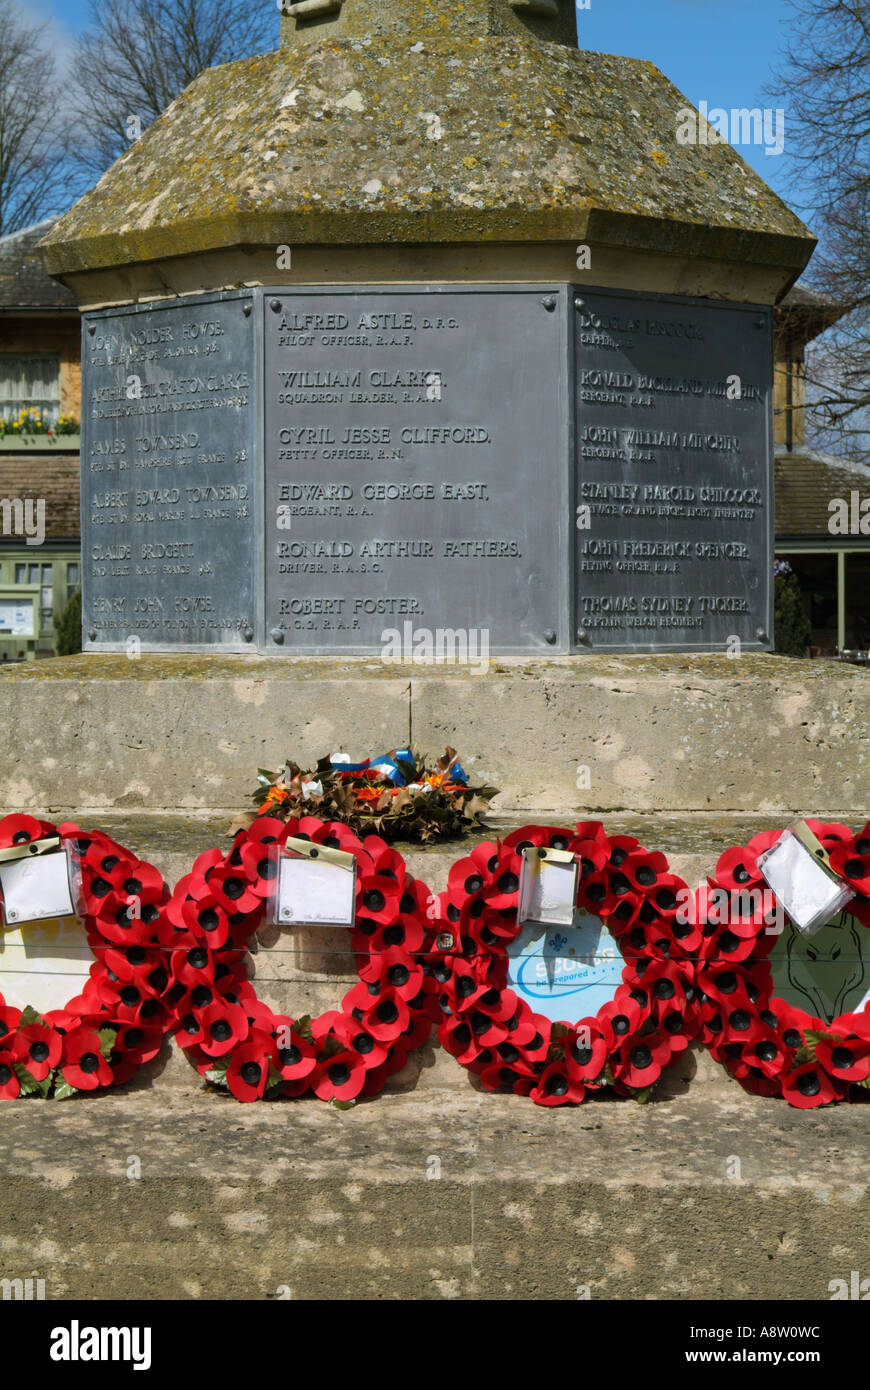 WAR DEAD MEMORIAL. BOURTON ON THE WATER. GLOUCESTERSHIRE. ENGLAND. UK - Stock Image